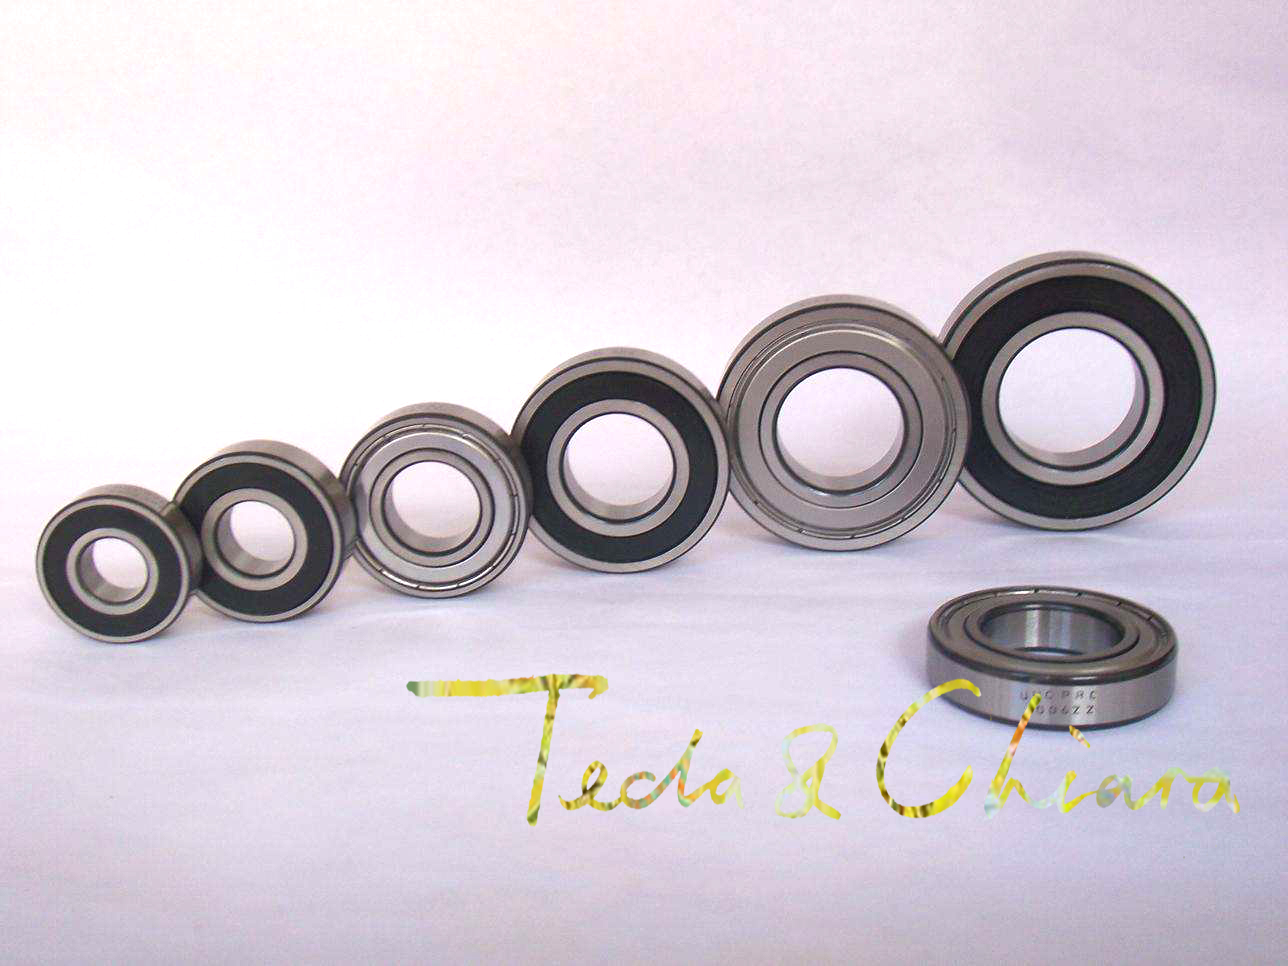 MR105 MR105ZZ MR105RS MR105-2Z MR105Z MR105-2RS ZZ RS RZ 2RZ Deep Groove Ball Bearings 5 x 10 x 4mm High Quality boss mr105